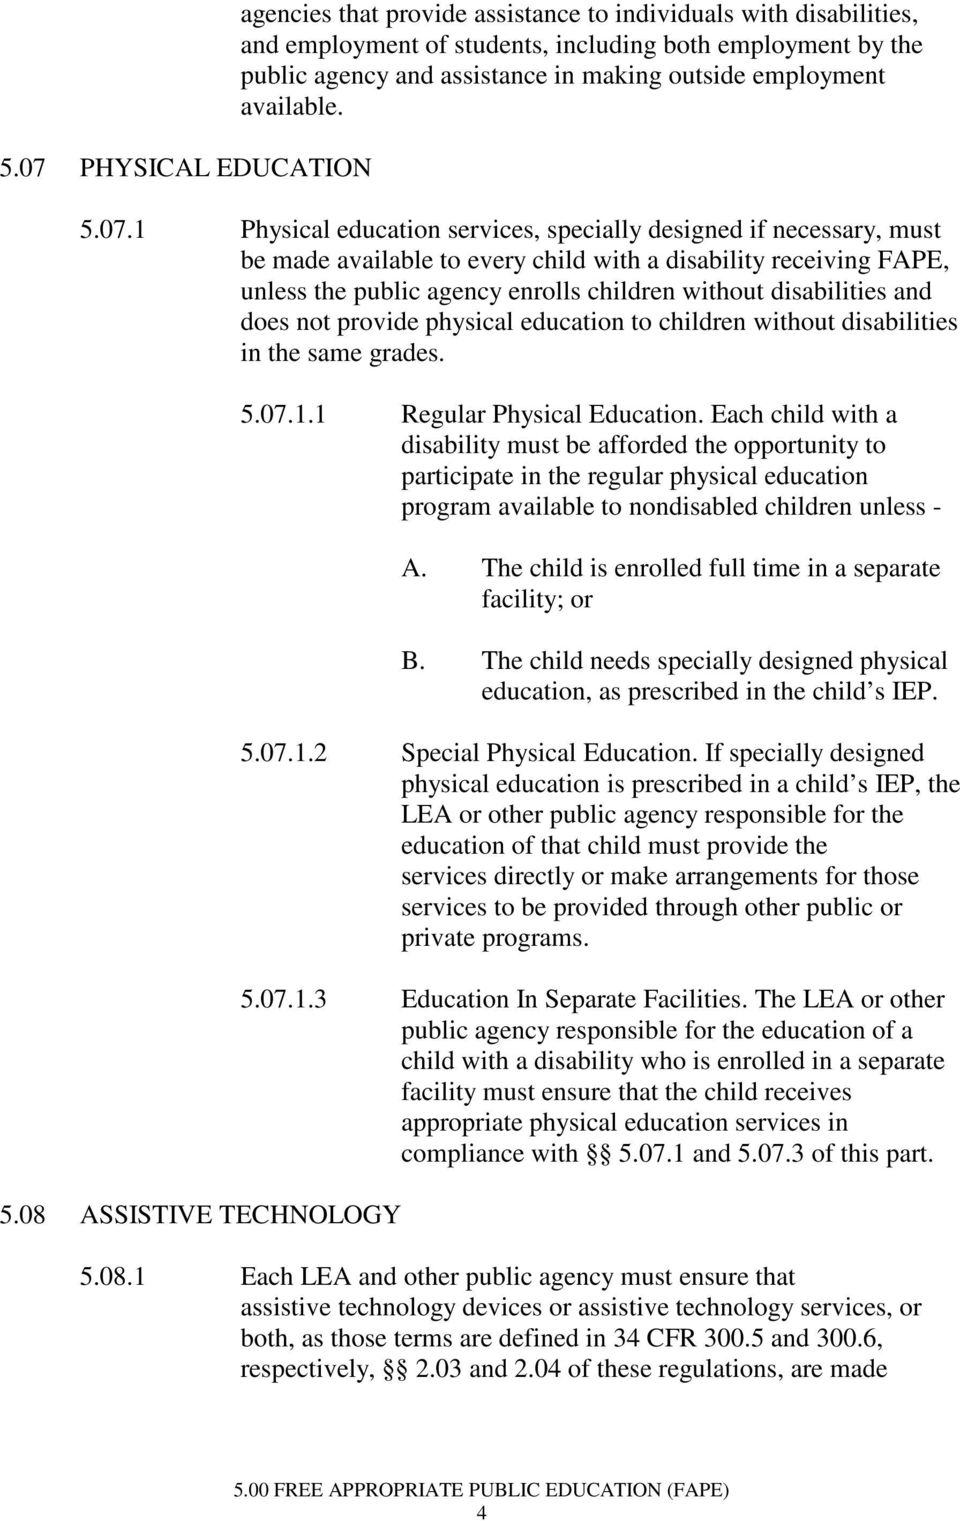 1 Physical education services, specially designed if necessary, must be made available to every child with a disability receiving FAPE, unless the public agency enrolls children without disabilities